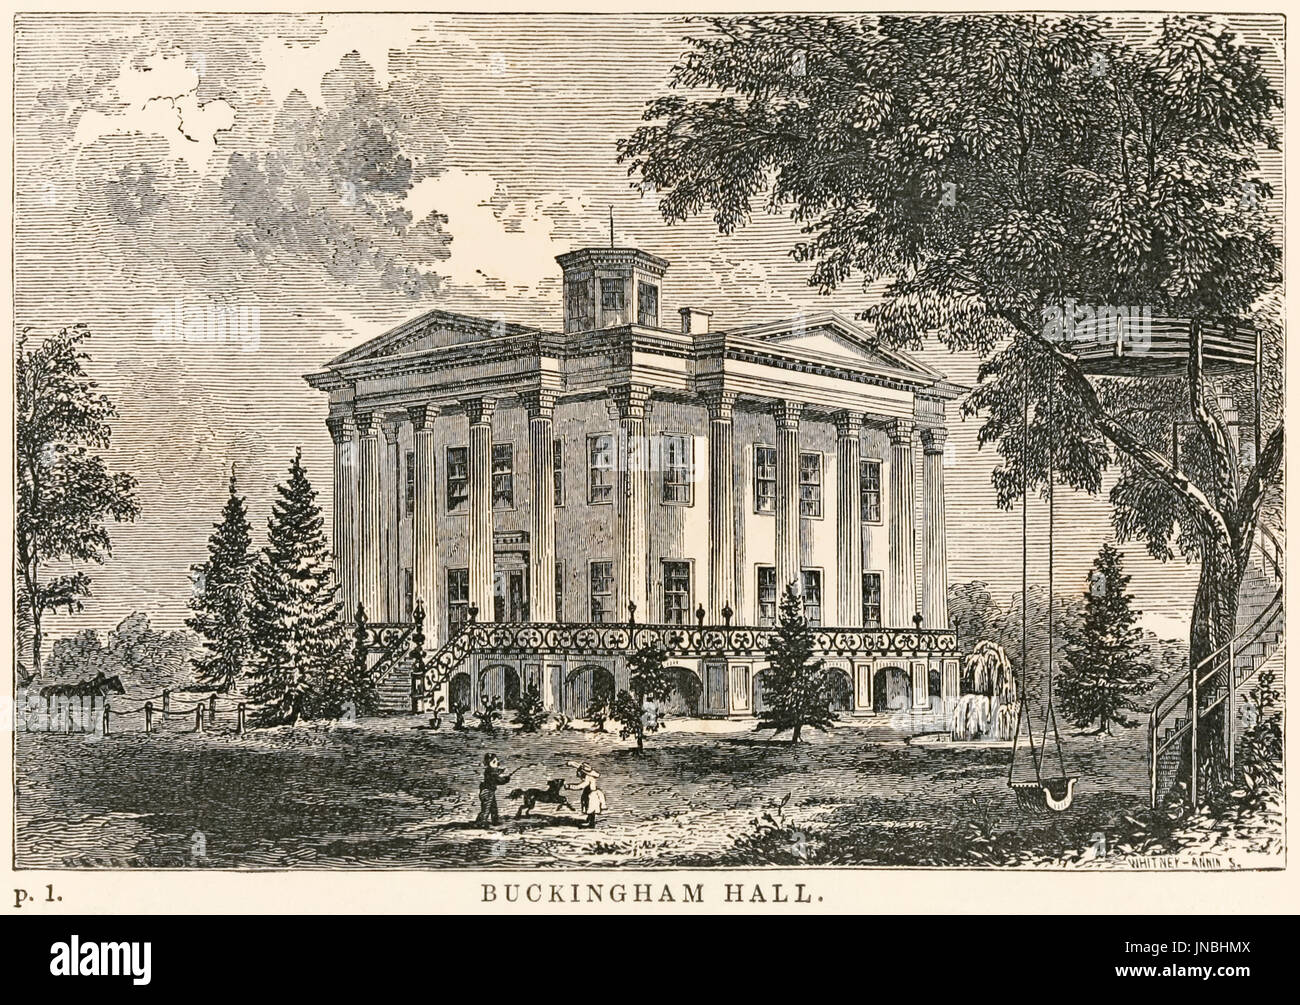 """Buckingham Hall"" illustration from 'Uncle Tom's Cabin Contrasted with Buckingham Hall' by Robert Criswell in which Julia Tennyson, an abolitionist and writer from the North who has published pamphlets against the cruelty of slavery; falls in love with Colonel Buckingham a southern plantation owner and both enter into philosophical discussions regarding American slavery. - Stock Image"